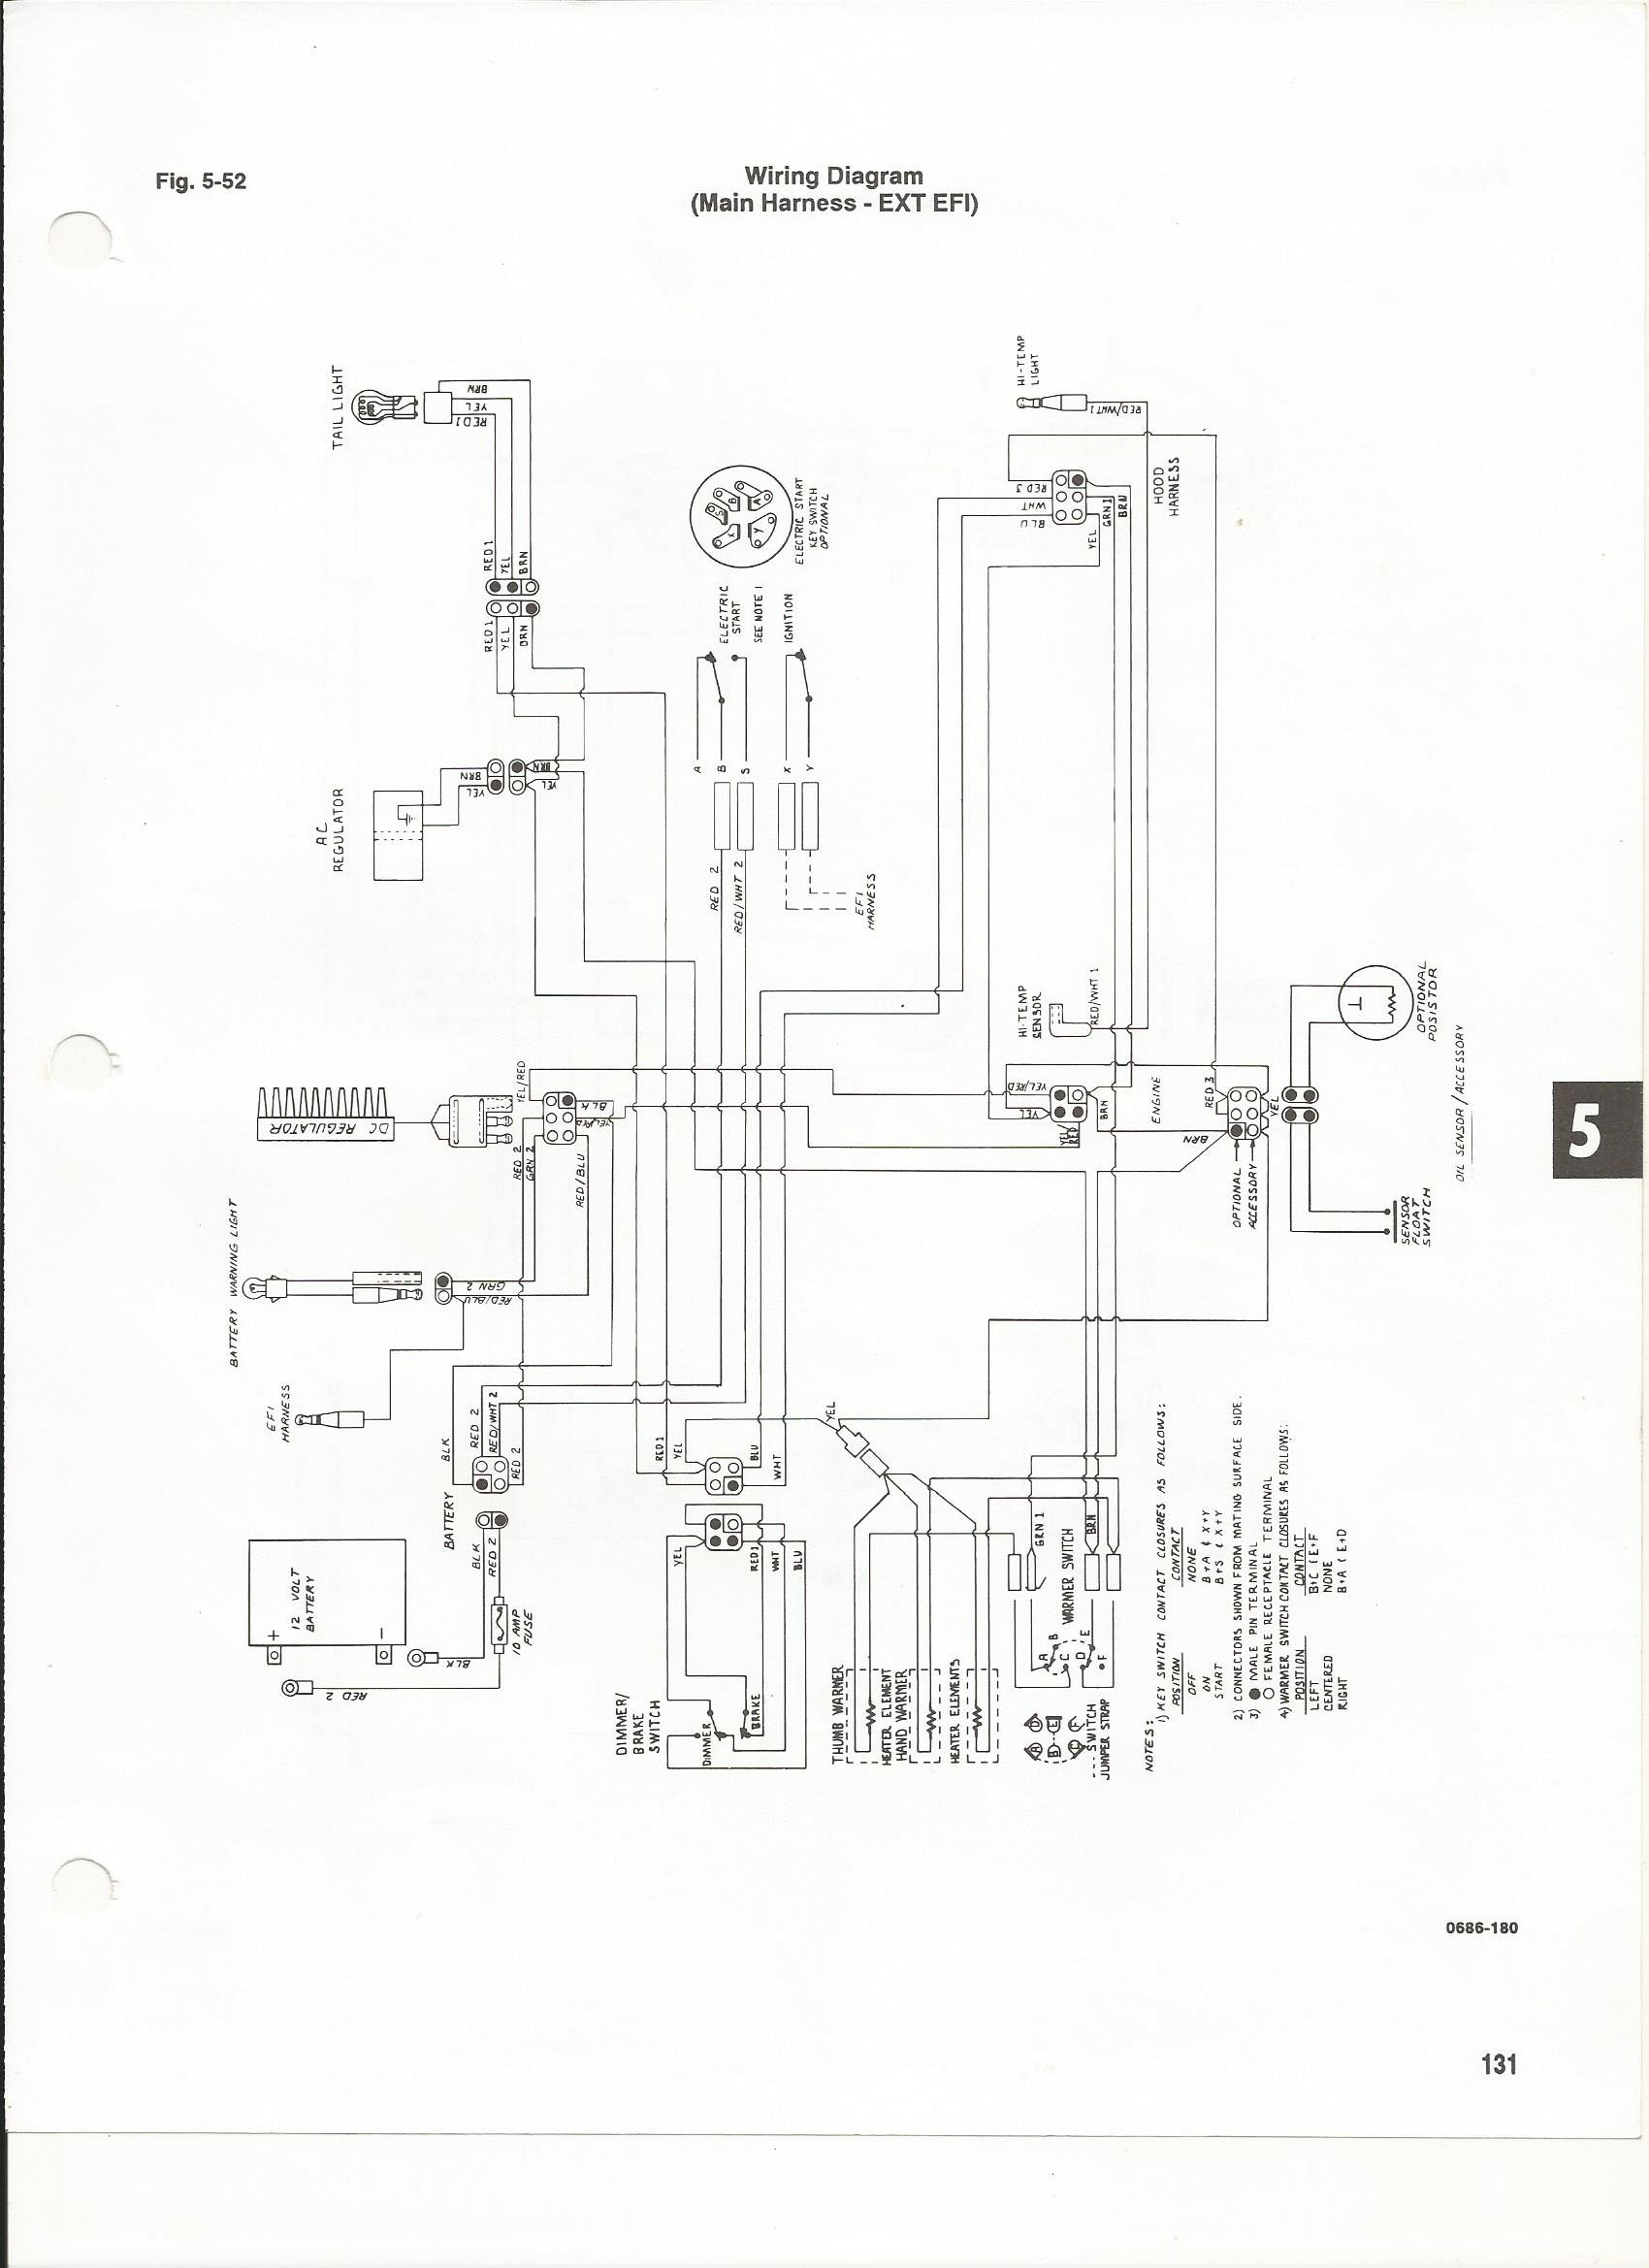 1988 Arctic Cat Wildcat Snowmobile Wiring Diagram